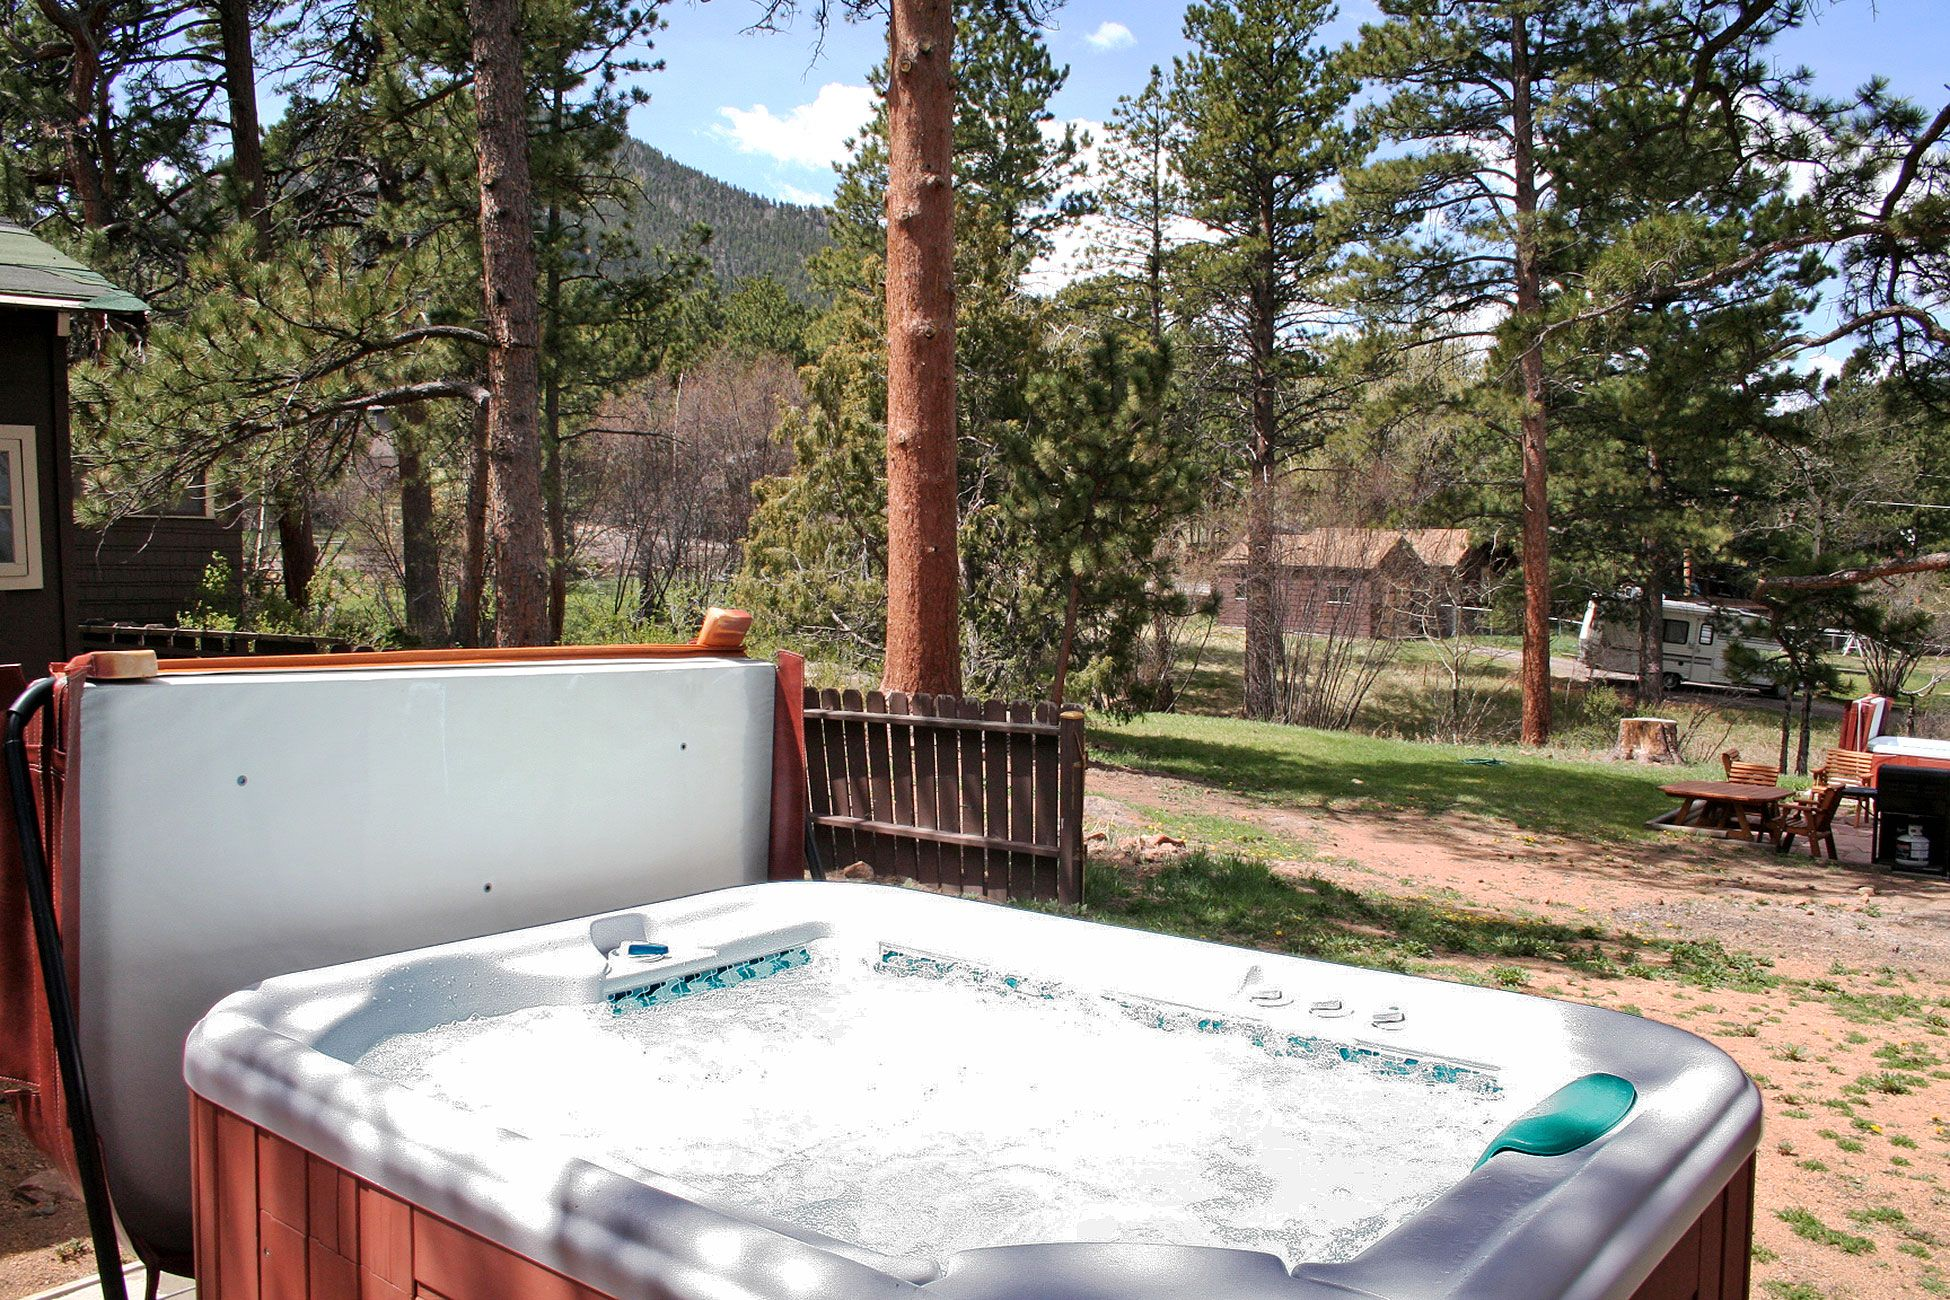 Surprising Governors Mansion With Hot Tub In Estes Park Colorado Home Interior And Landscaping Ferensignezvosmurscom